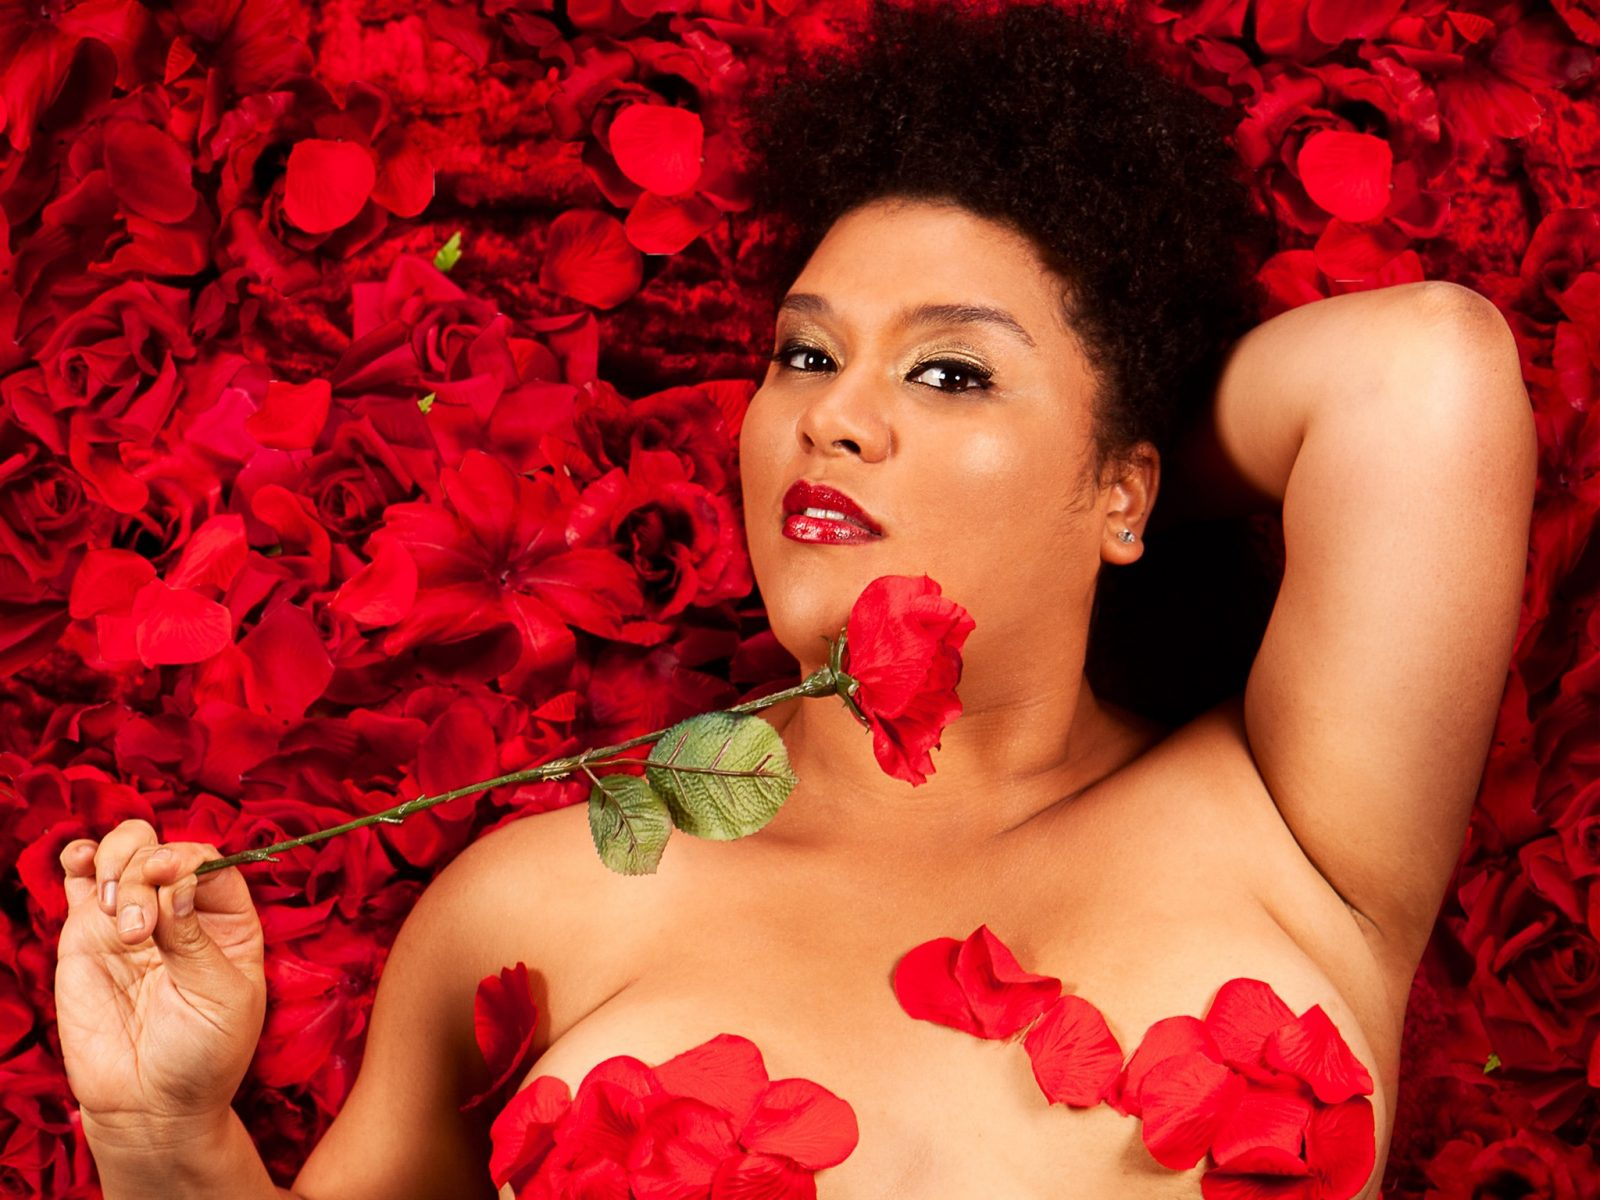 Candy Bowers lying on red rose petals